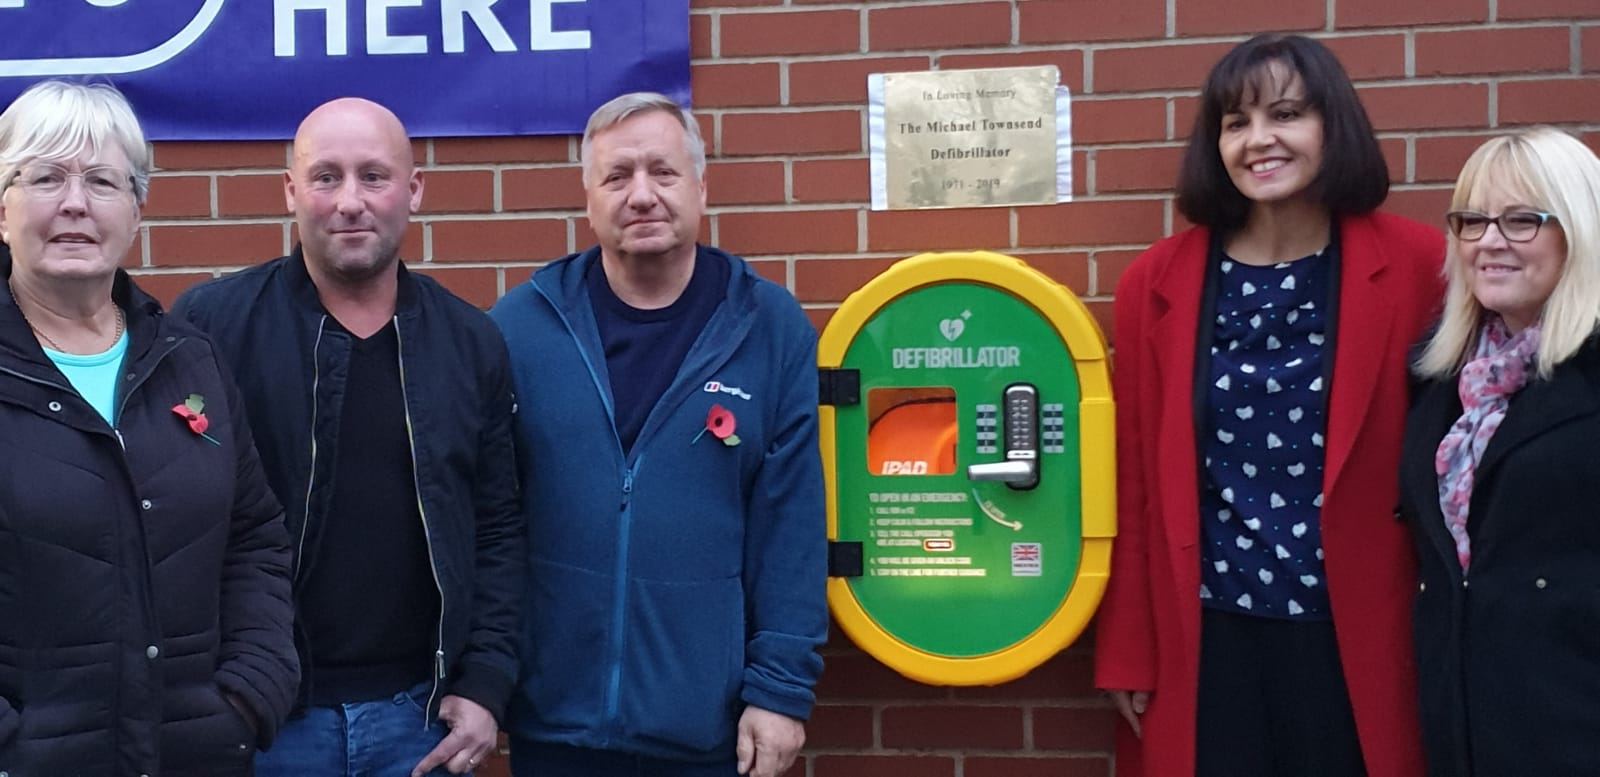 Defibrillator_group_pic011119.jpg